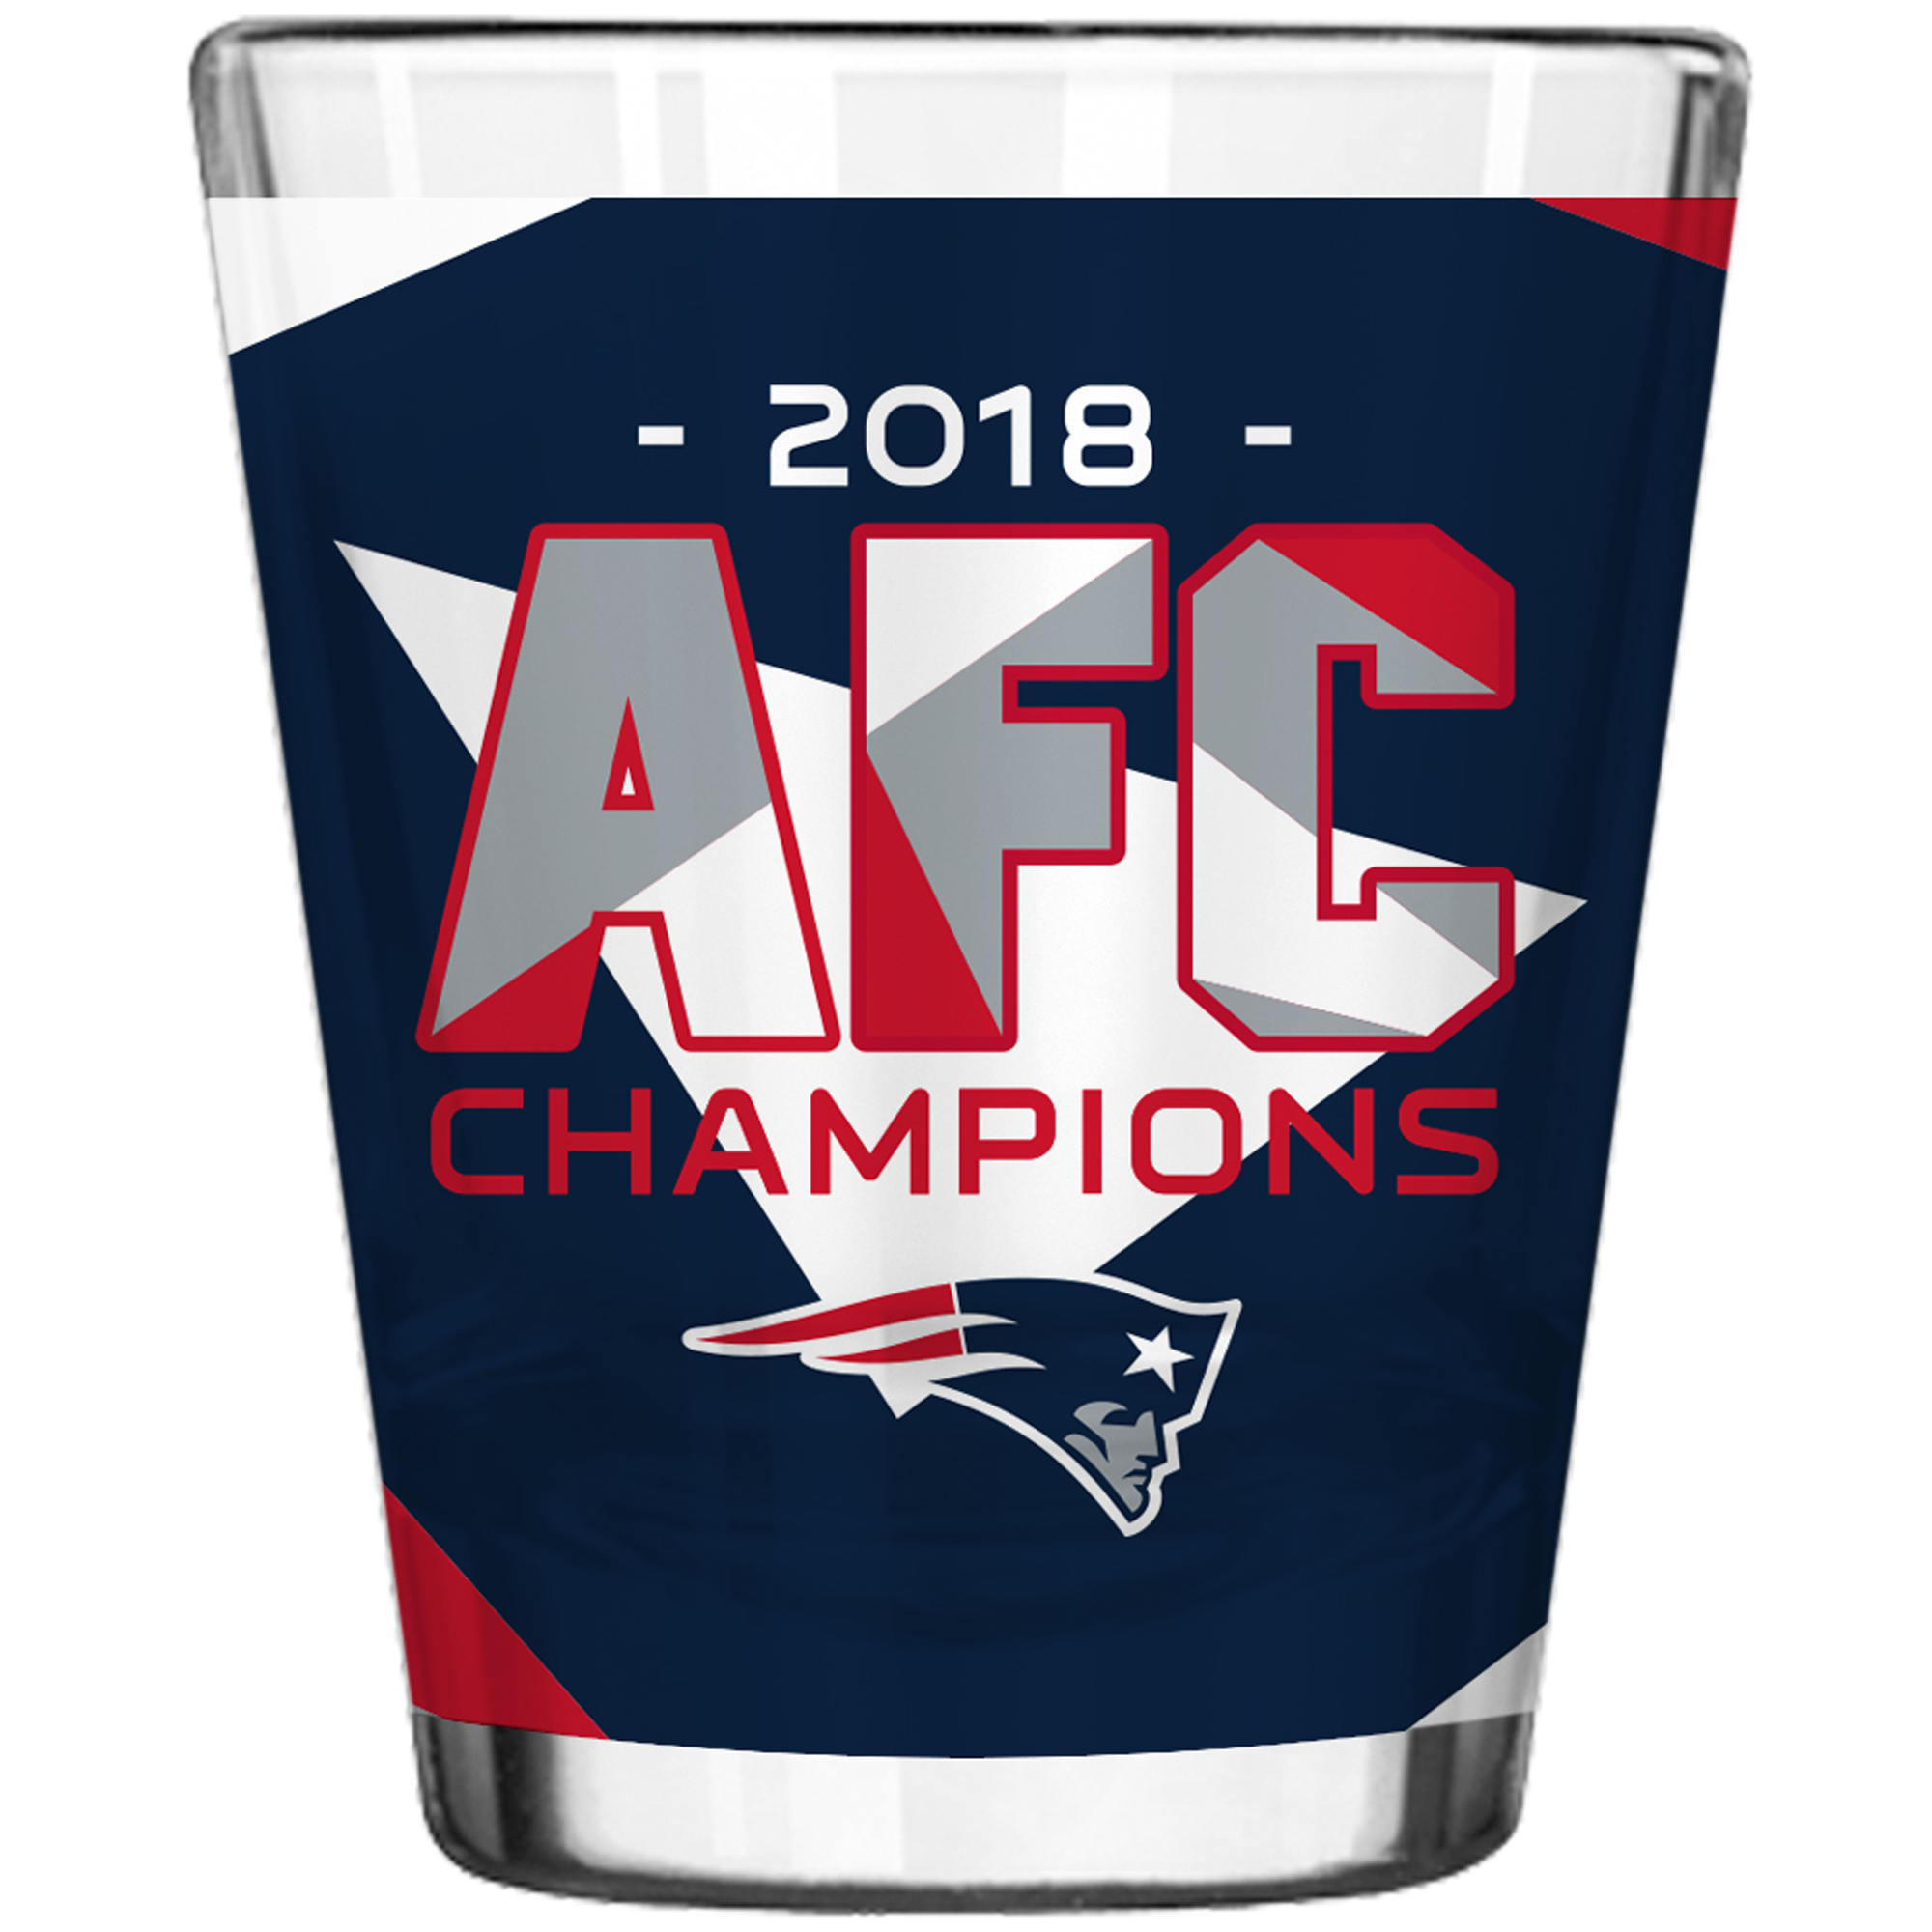 New England Patriots 2018 AFC Champions 2oz. Sublimated Shot Glass - No Size